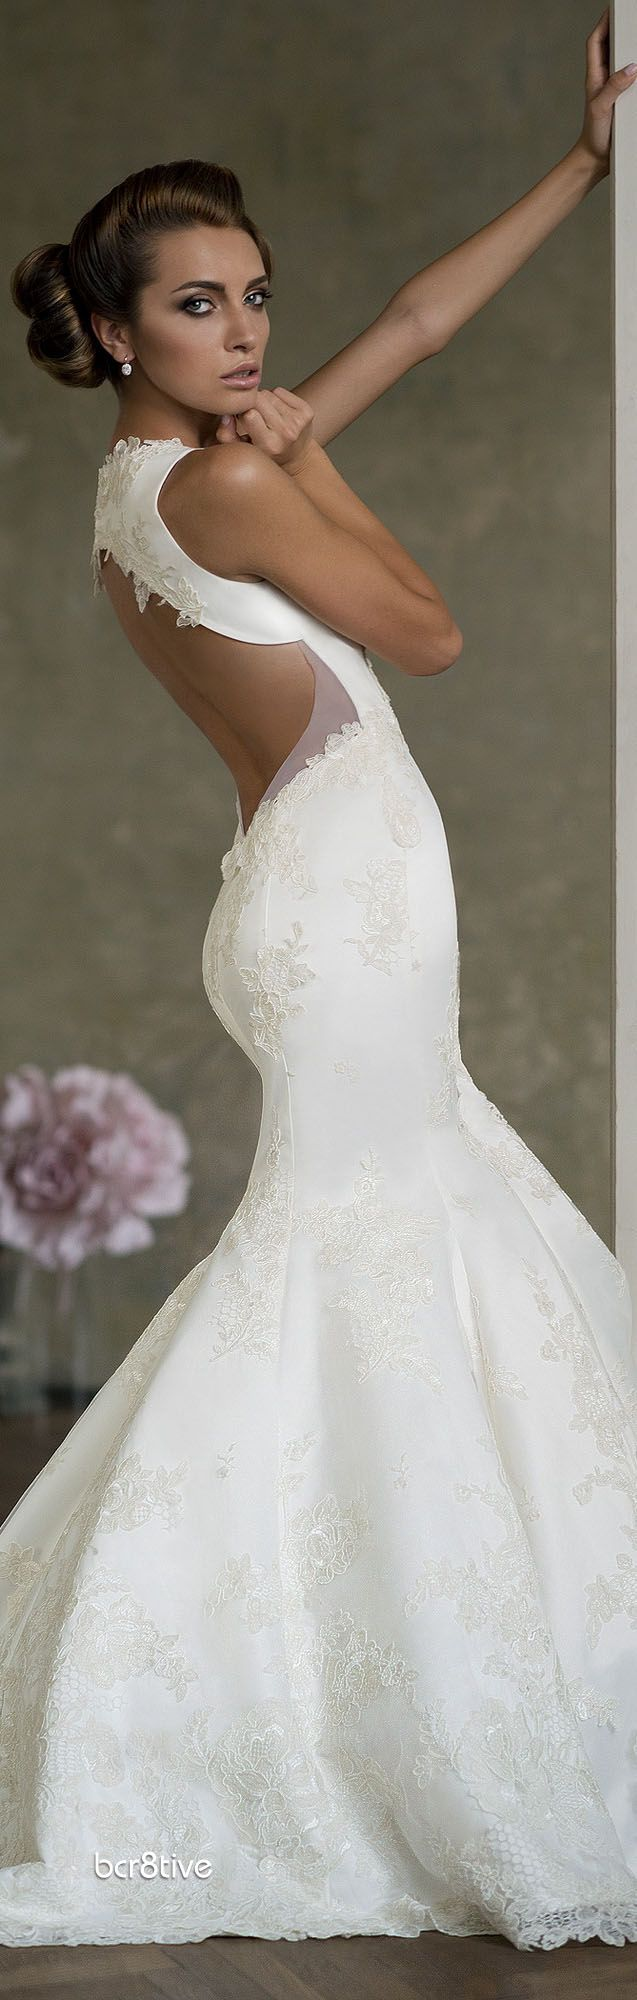 Bien Savvy -- Be in Love -- Love Story Collection - The more I see backless, lace wedding dresses the more I am leaning towards!